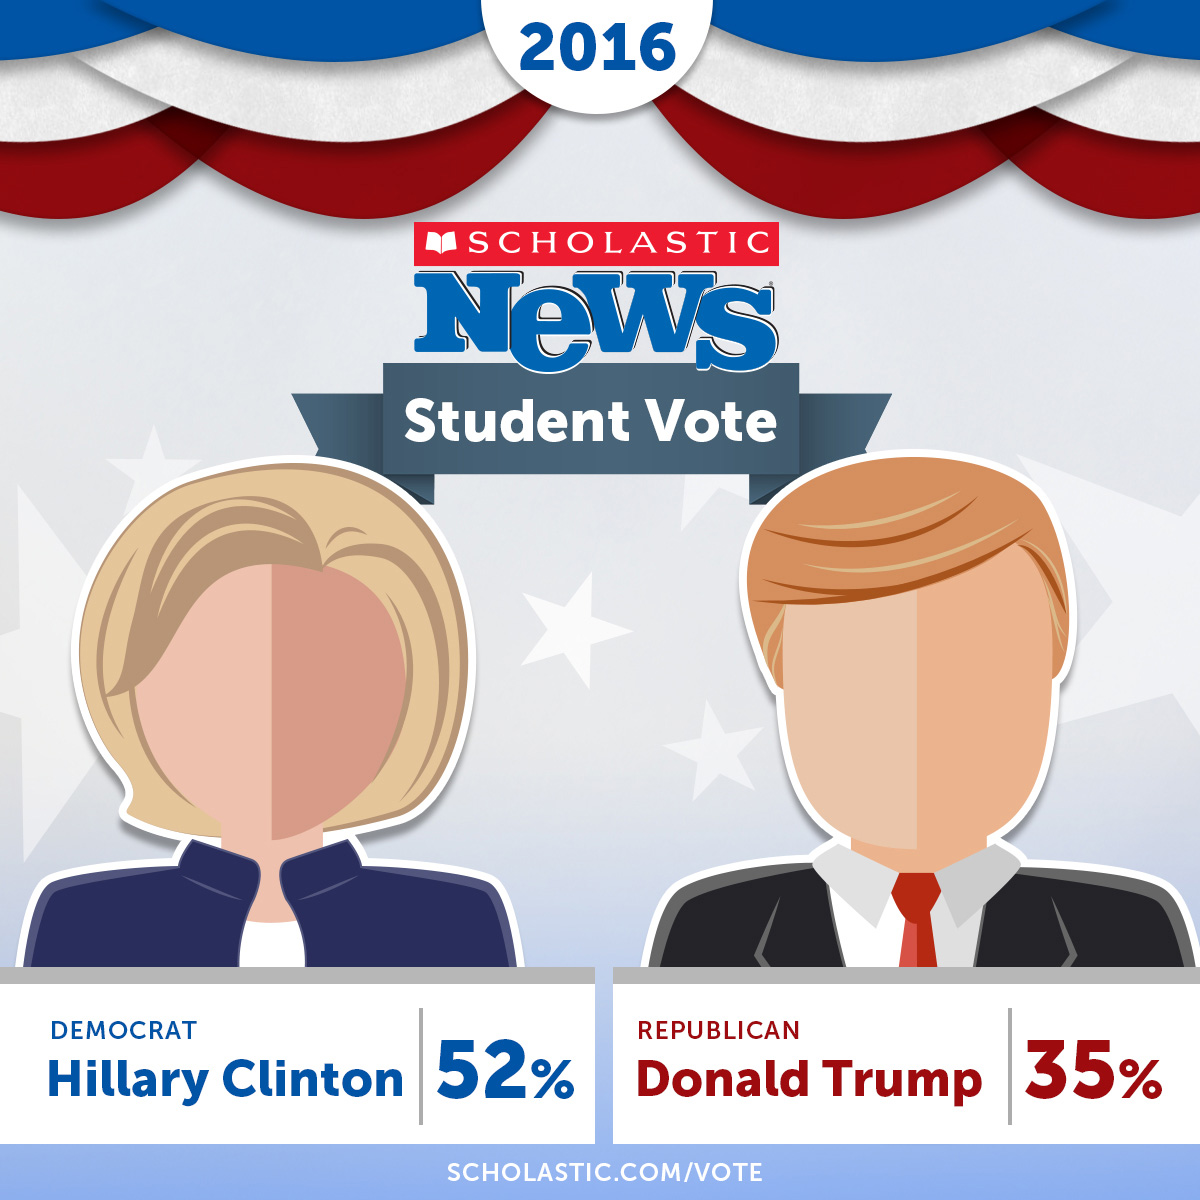 Democratic presidential candidate Hillary Clinton has been named the winner of the 2016 Scholastic News Student Vote with 52% of the student vote, while Republican candidate Donald Trump received 35%. (Credit: Scholastic)